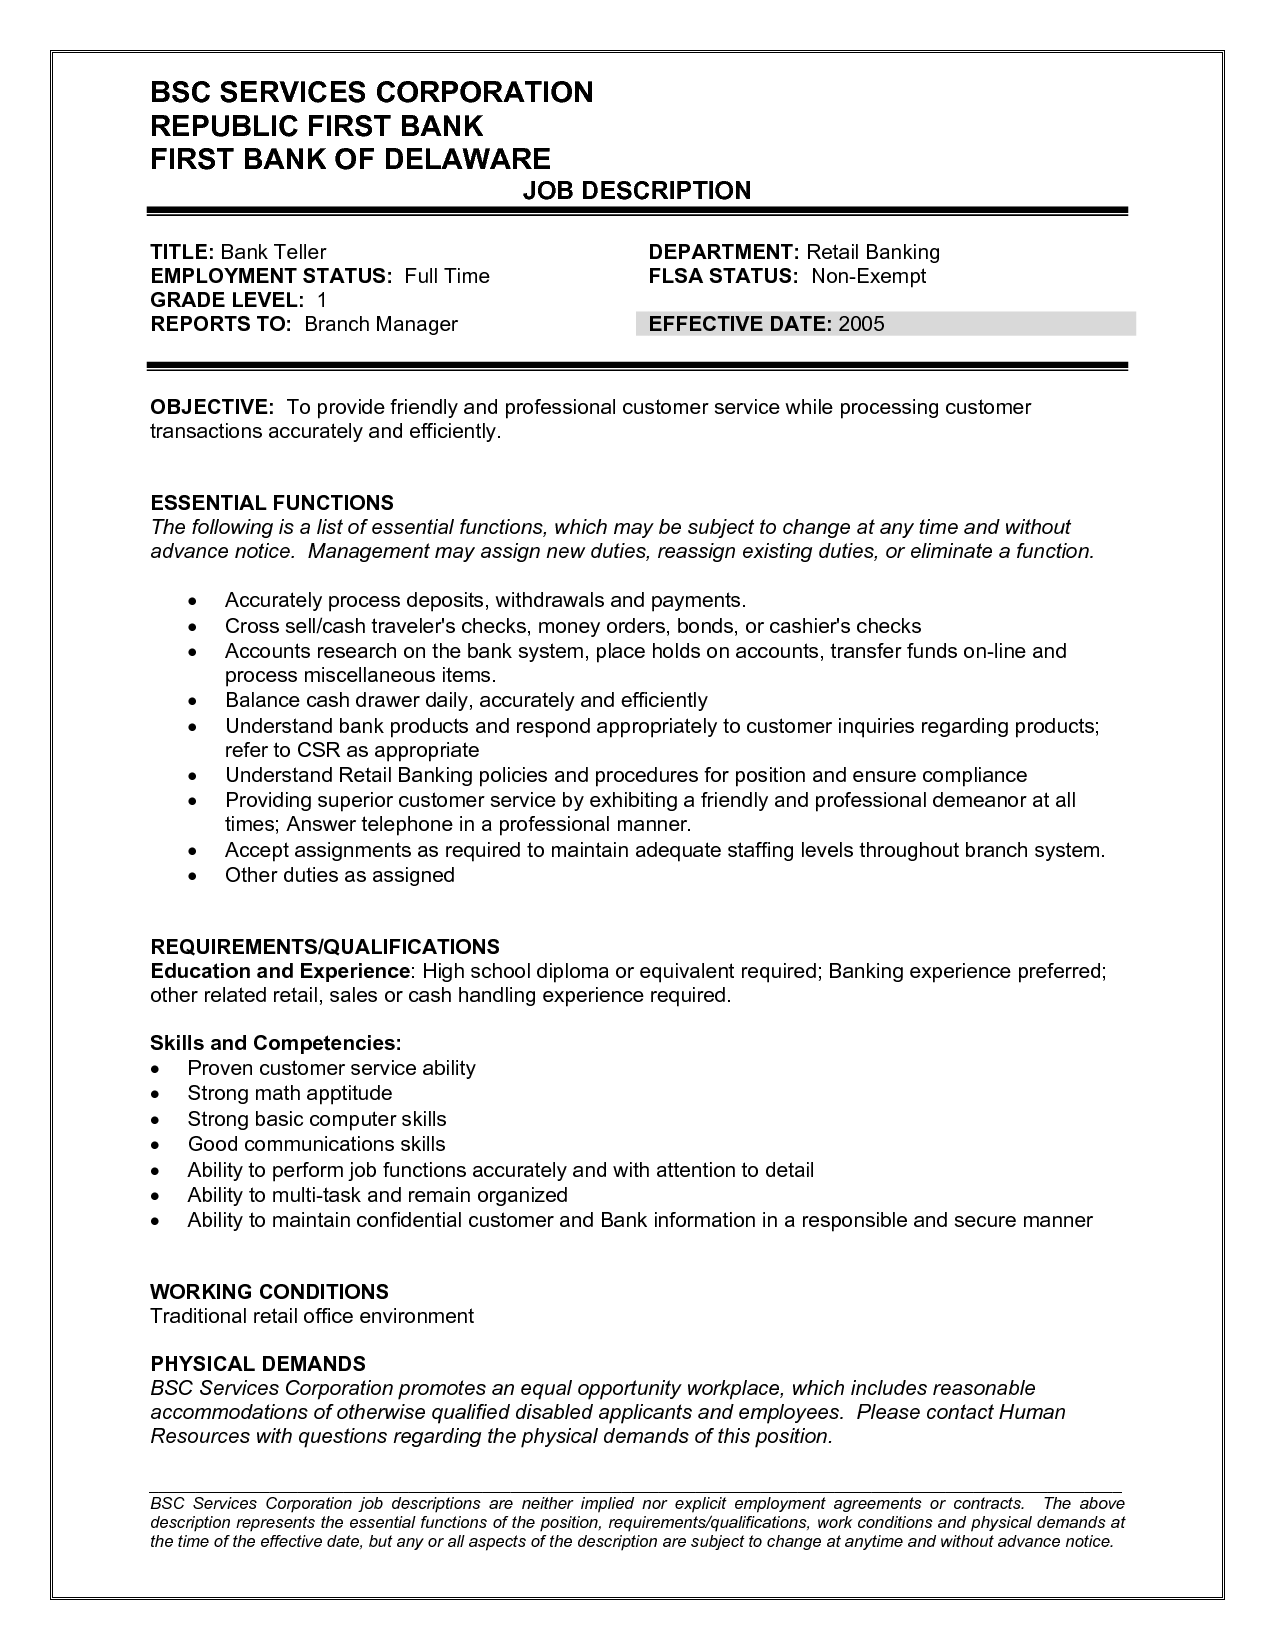 Superb Teller Job Description Resume Bank Teller Job Duties And Responsibilities Intended For Bank Teller Resume Description